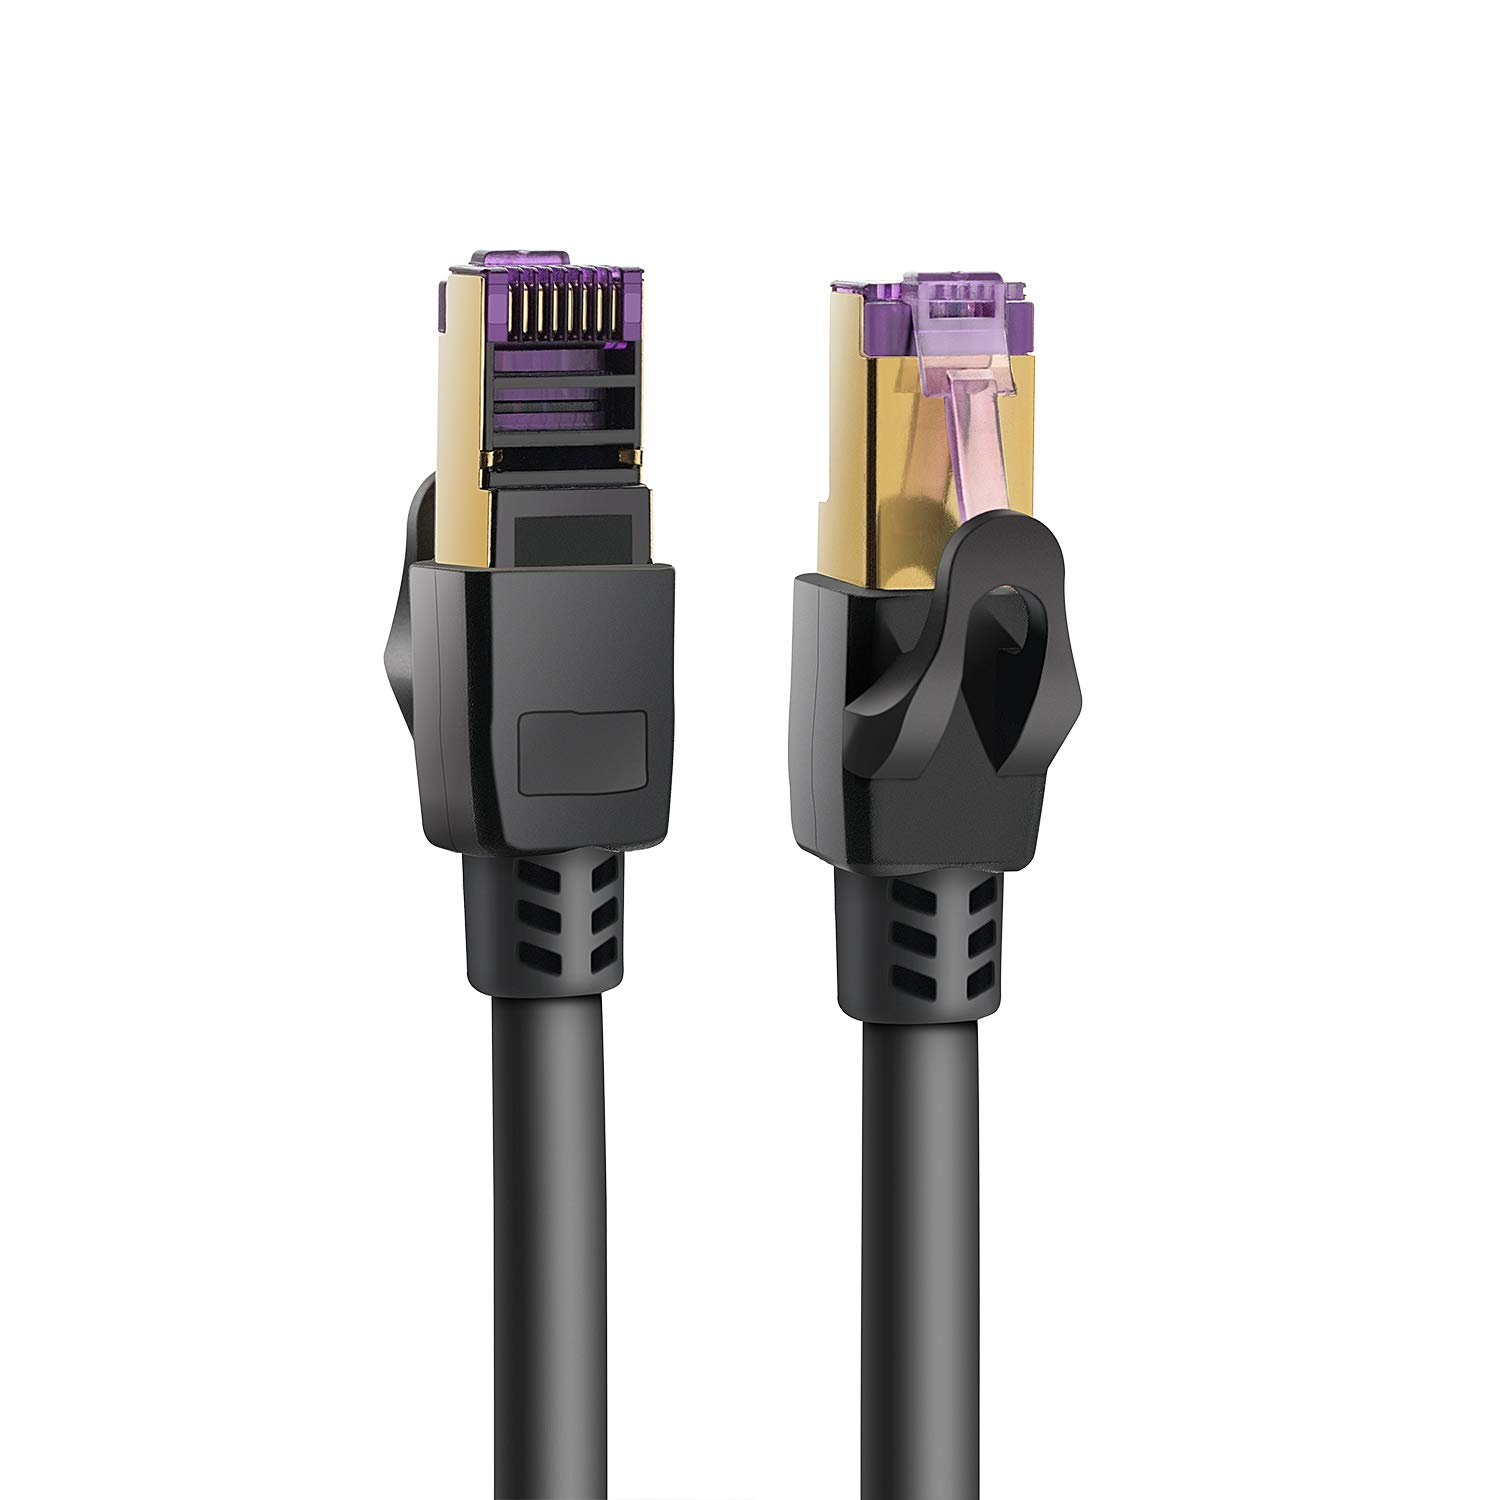 Pasow CAT 8 Ethernet Cable Network Patch Cable 40Gbps